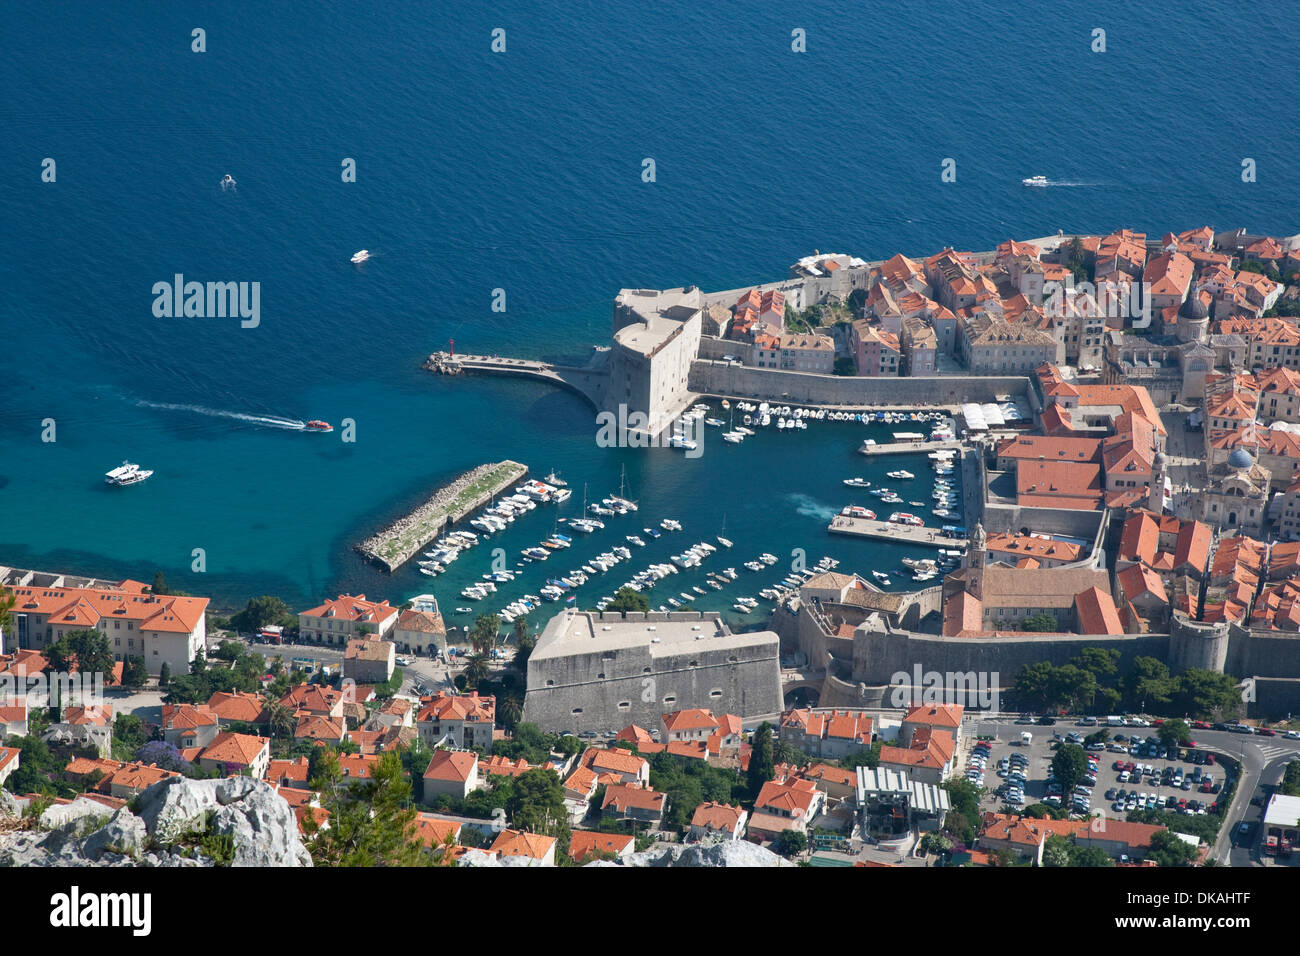 Dubrovnik, Croatia. A view from the cable car looking down onto the old town - Stock Image